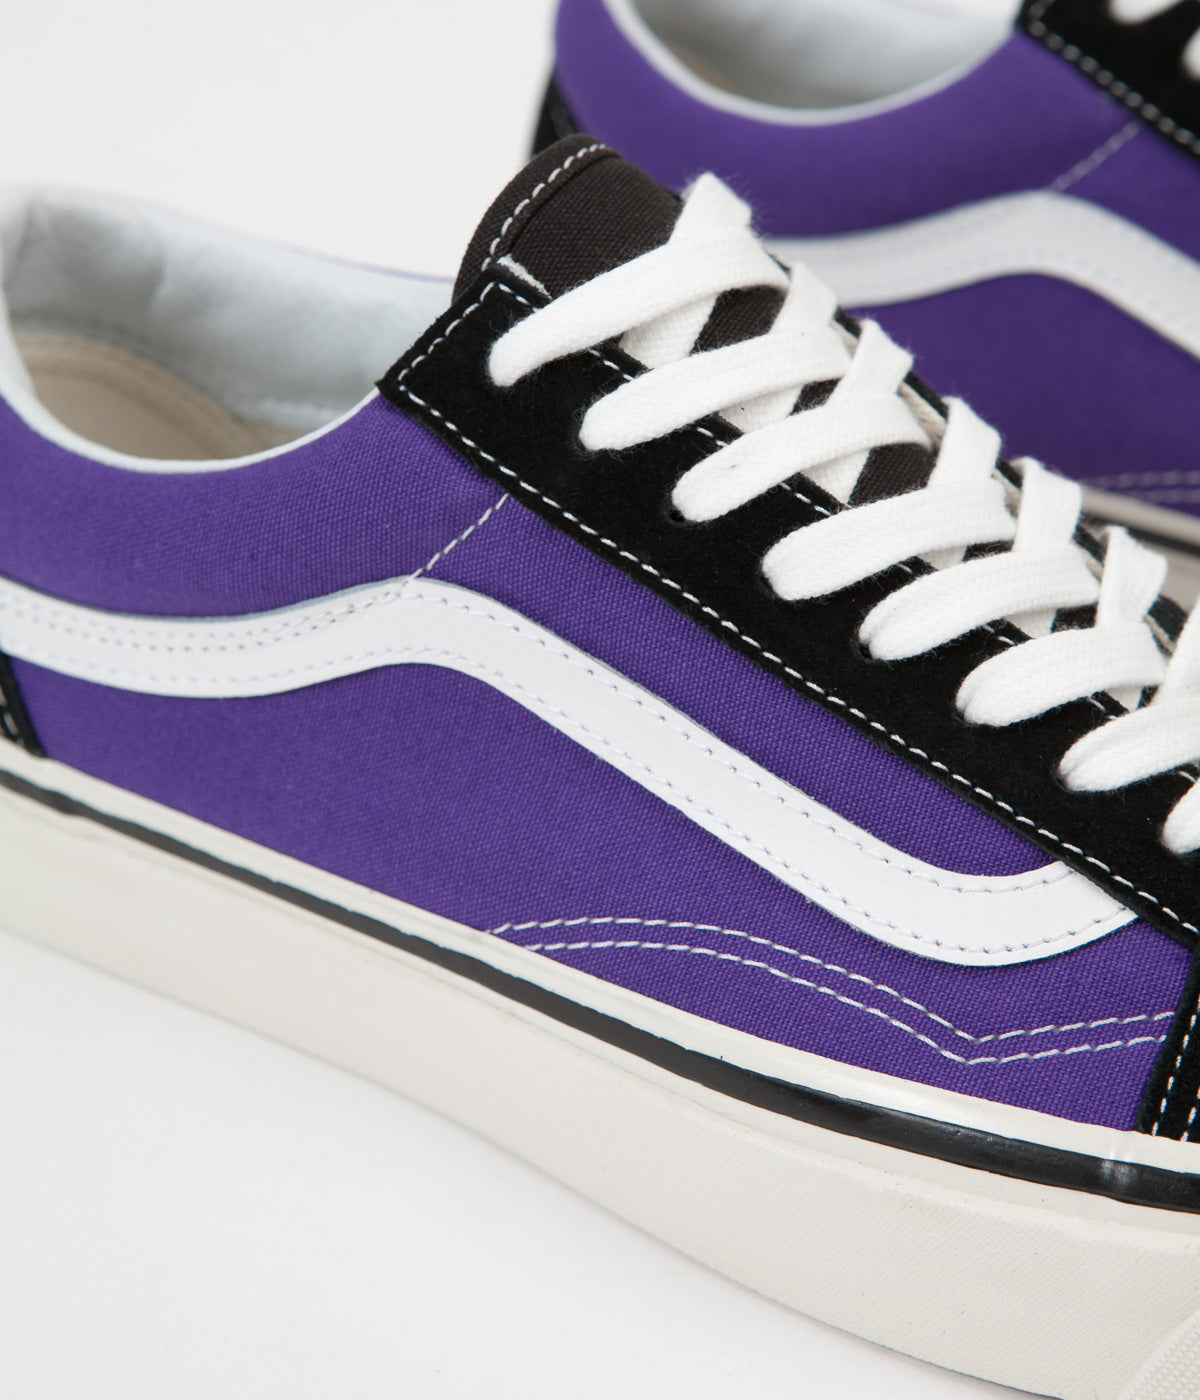 28295873ce ... Vans Old Skool 36 DX Anaheim Factory Shoes - Black   OG Bright Purple  ...